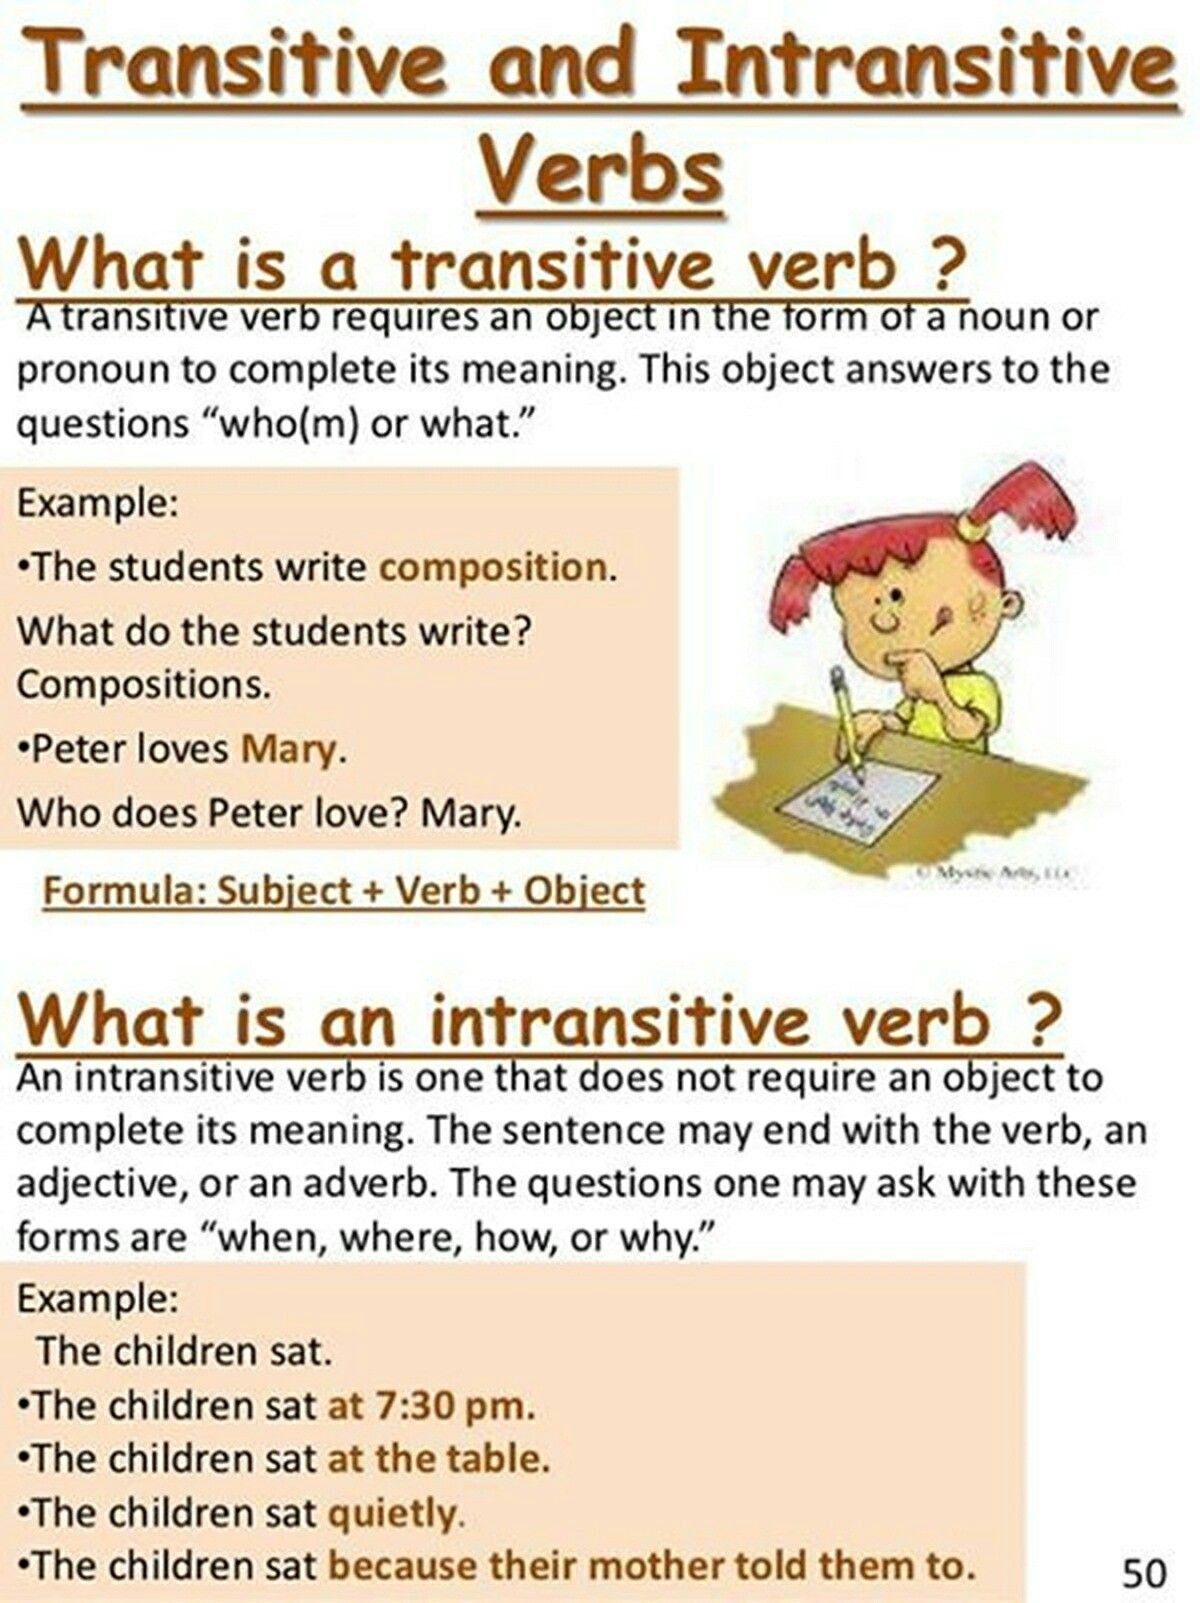 worksheet Transitive And Intransitive Verb Worksheets And Answers pin by rahul shinde on 01 learn english pinterest time verbs grammar language vocabulary arts intransitive verb tenses gr